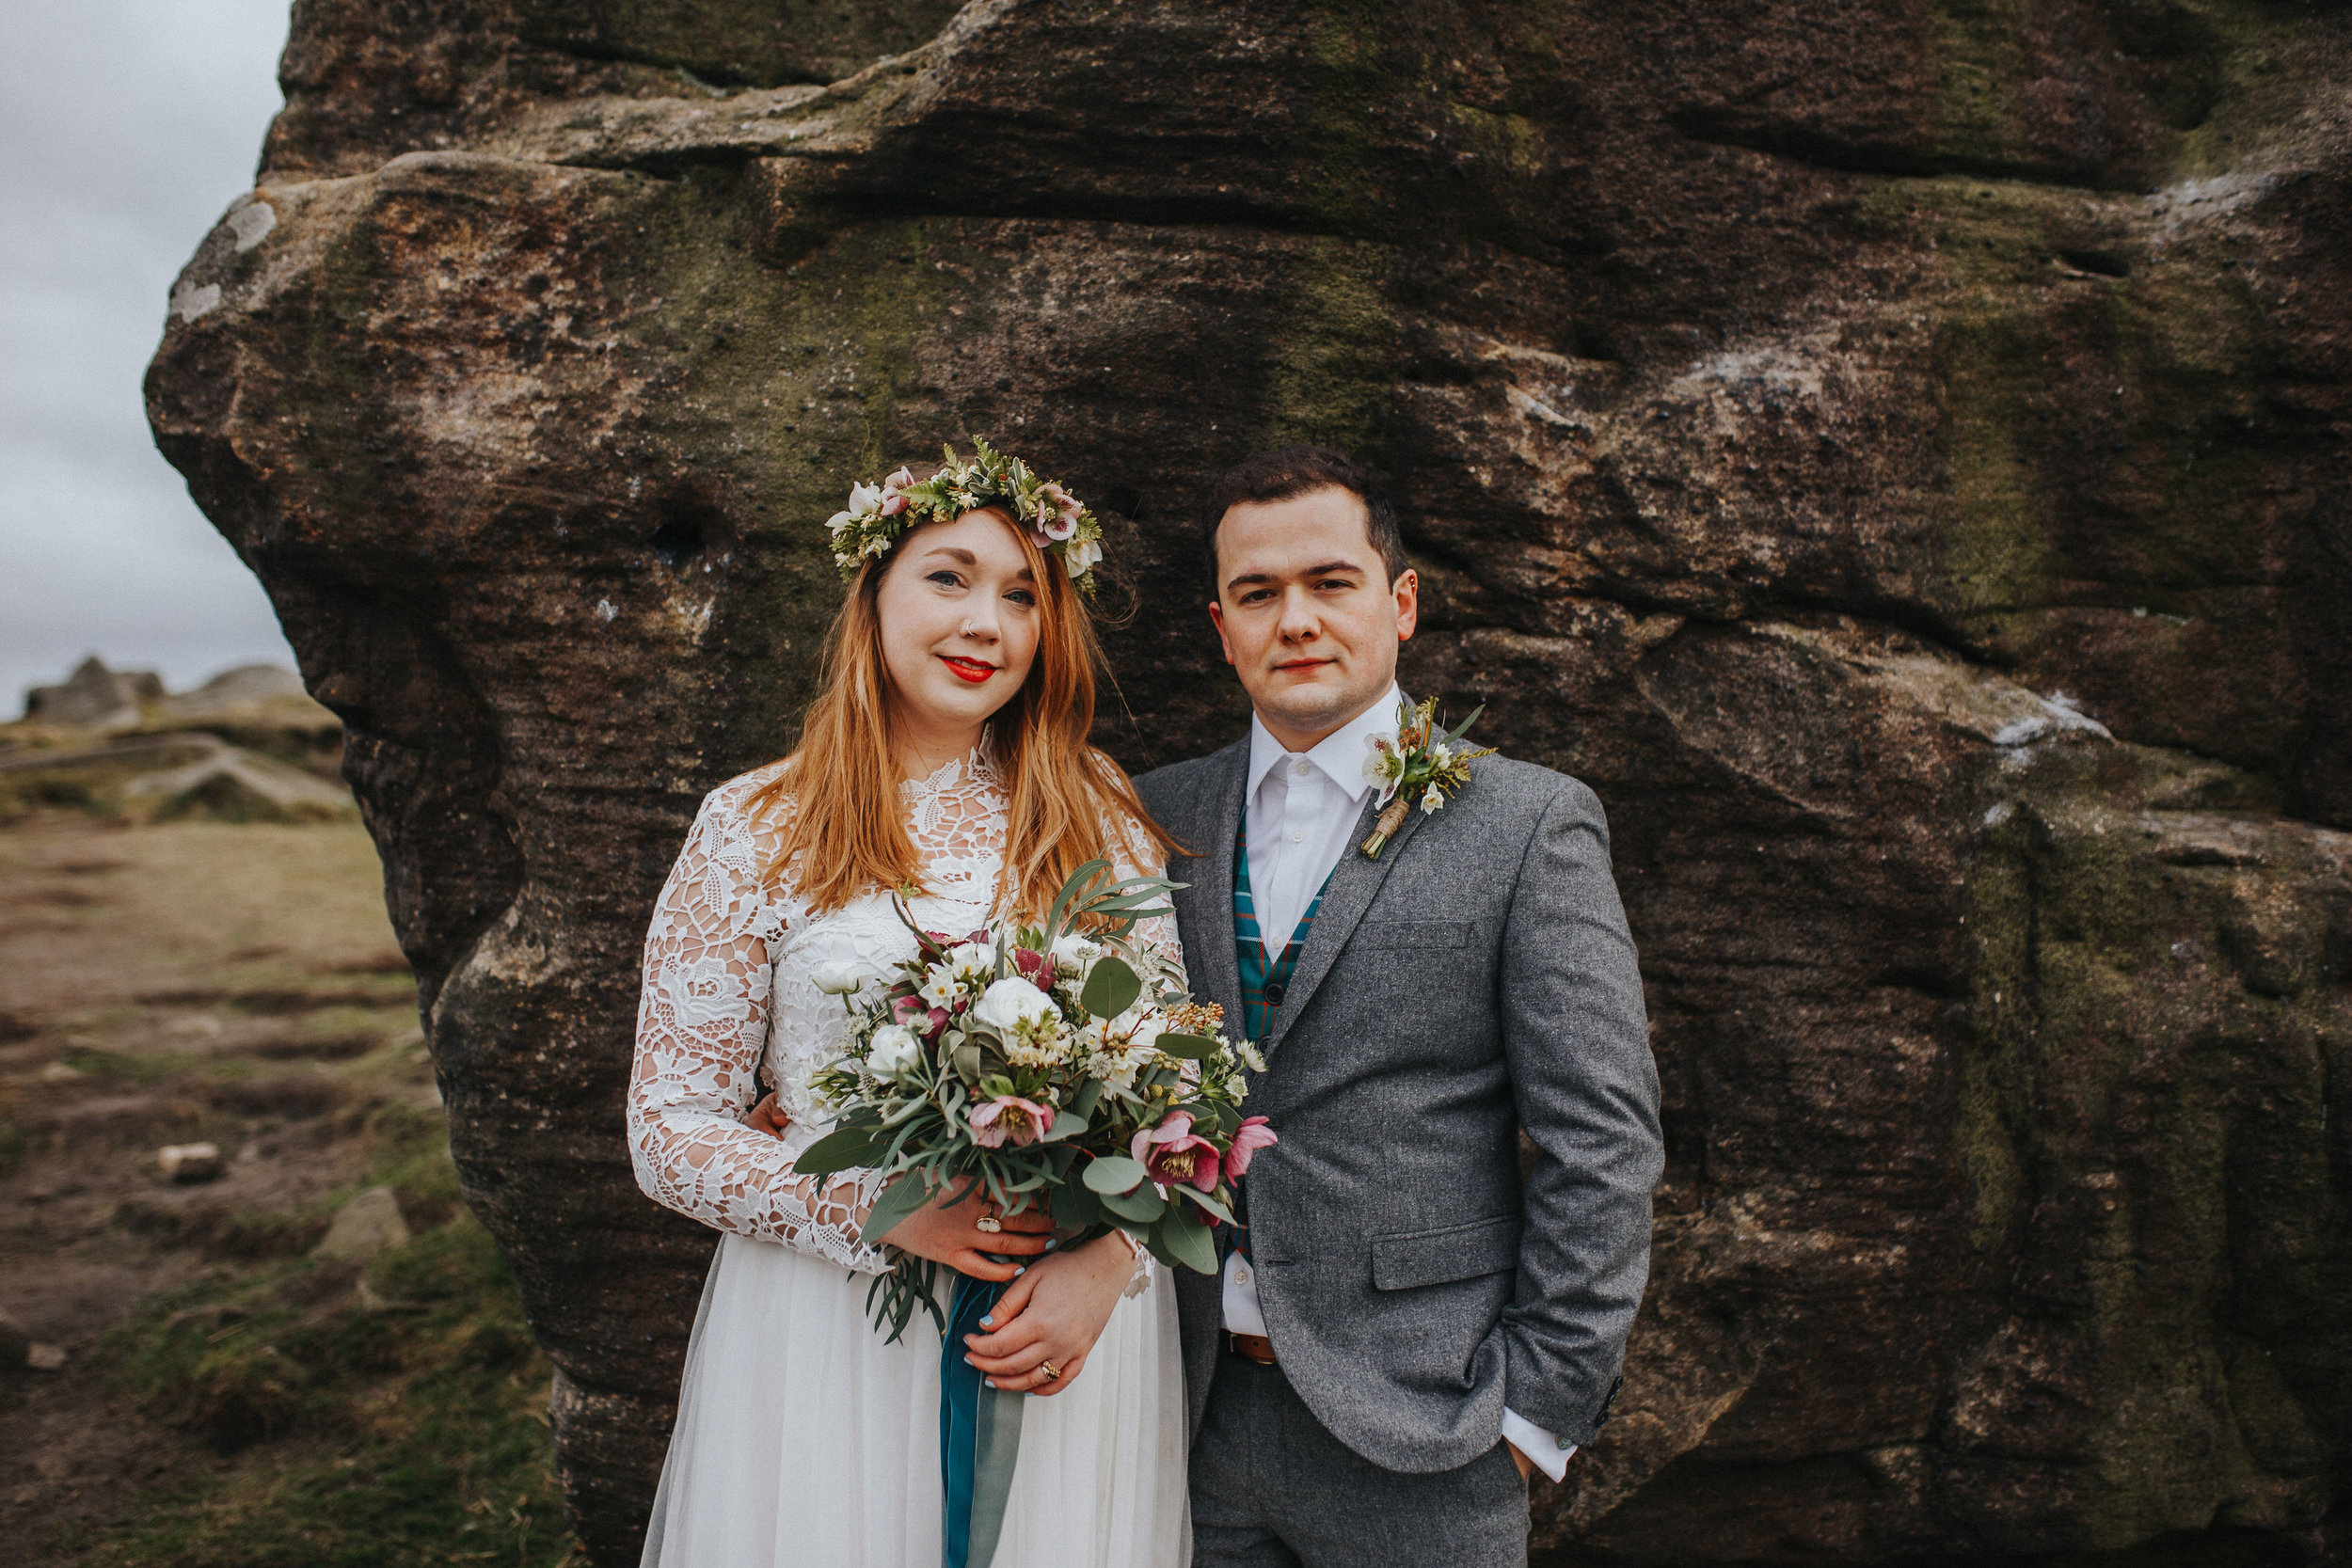 Rosie-peak district-bride-bespoke-long sleeved-lace-tulle-winter-wedding-dress-matlock-susanna-greening-6